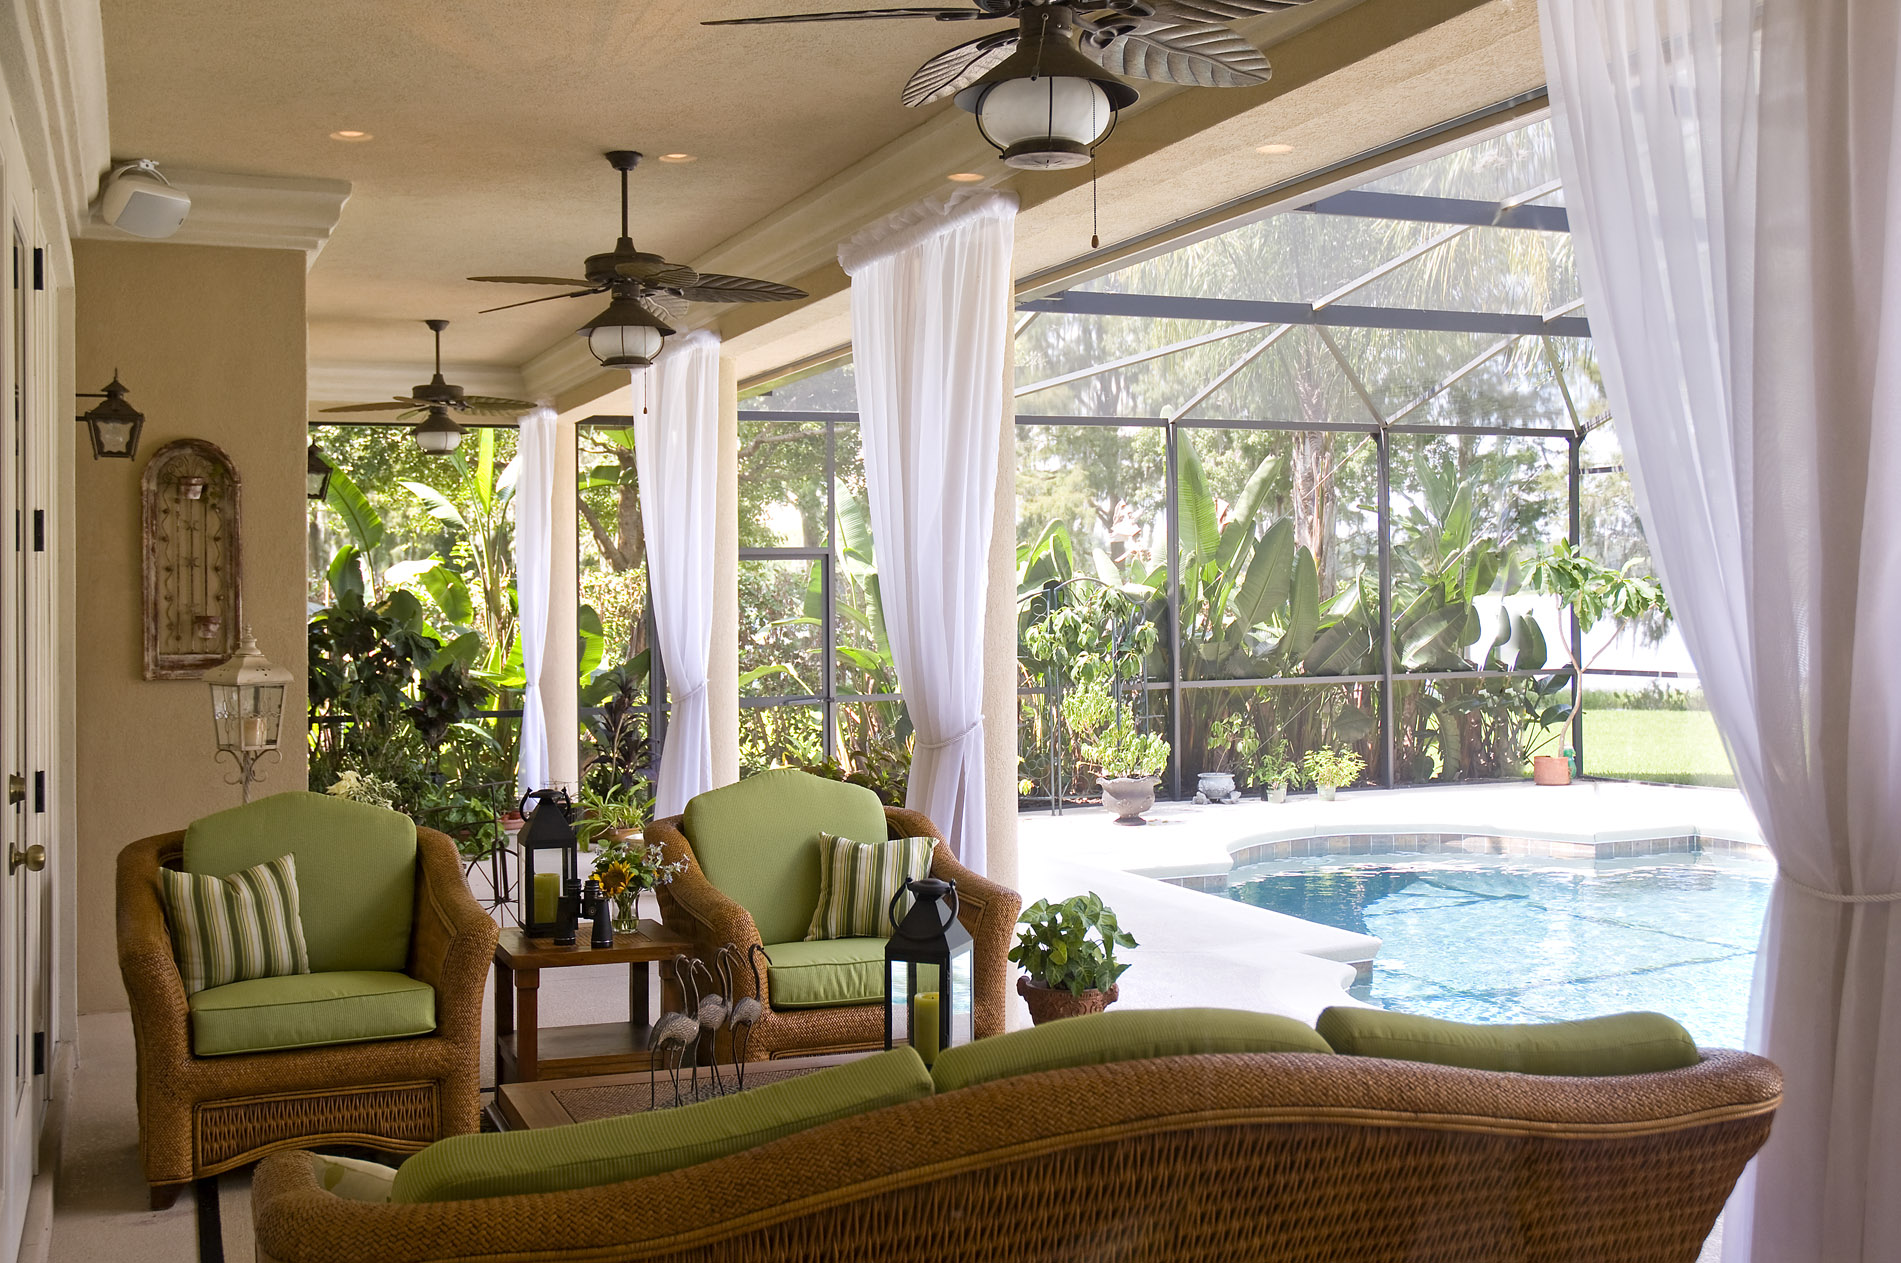 sunbrella outdoor chair cushions pool lounge chairs lowes the abc's of decorating…o is for decorating! | decorating den interiors blog ...